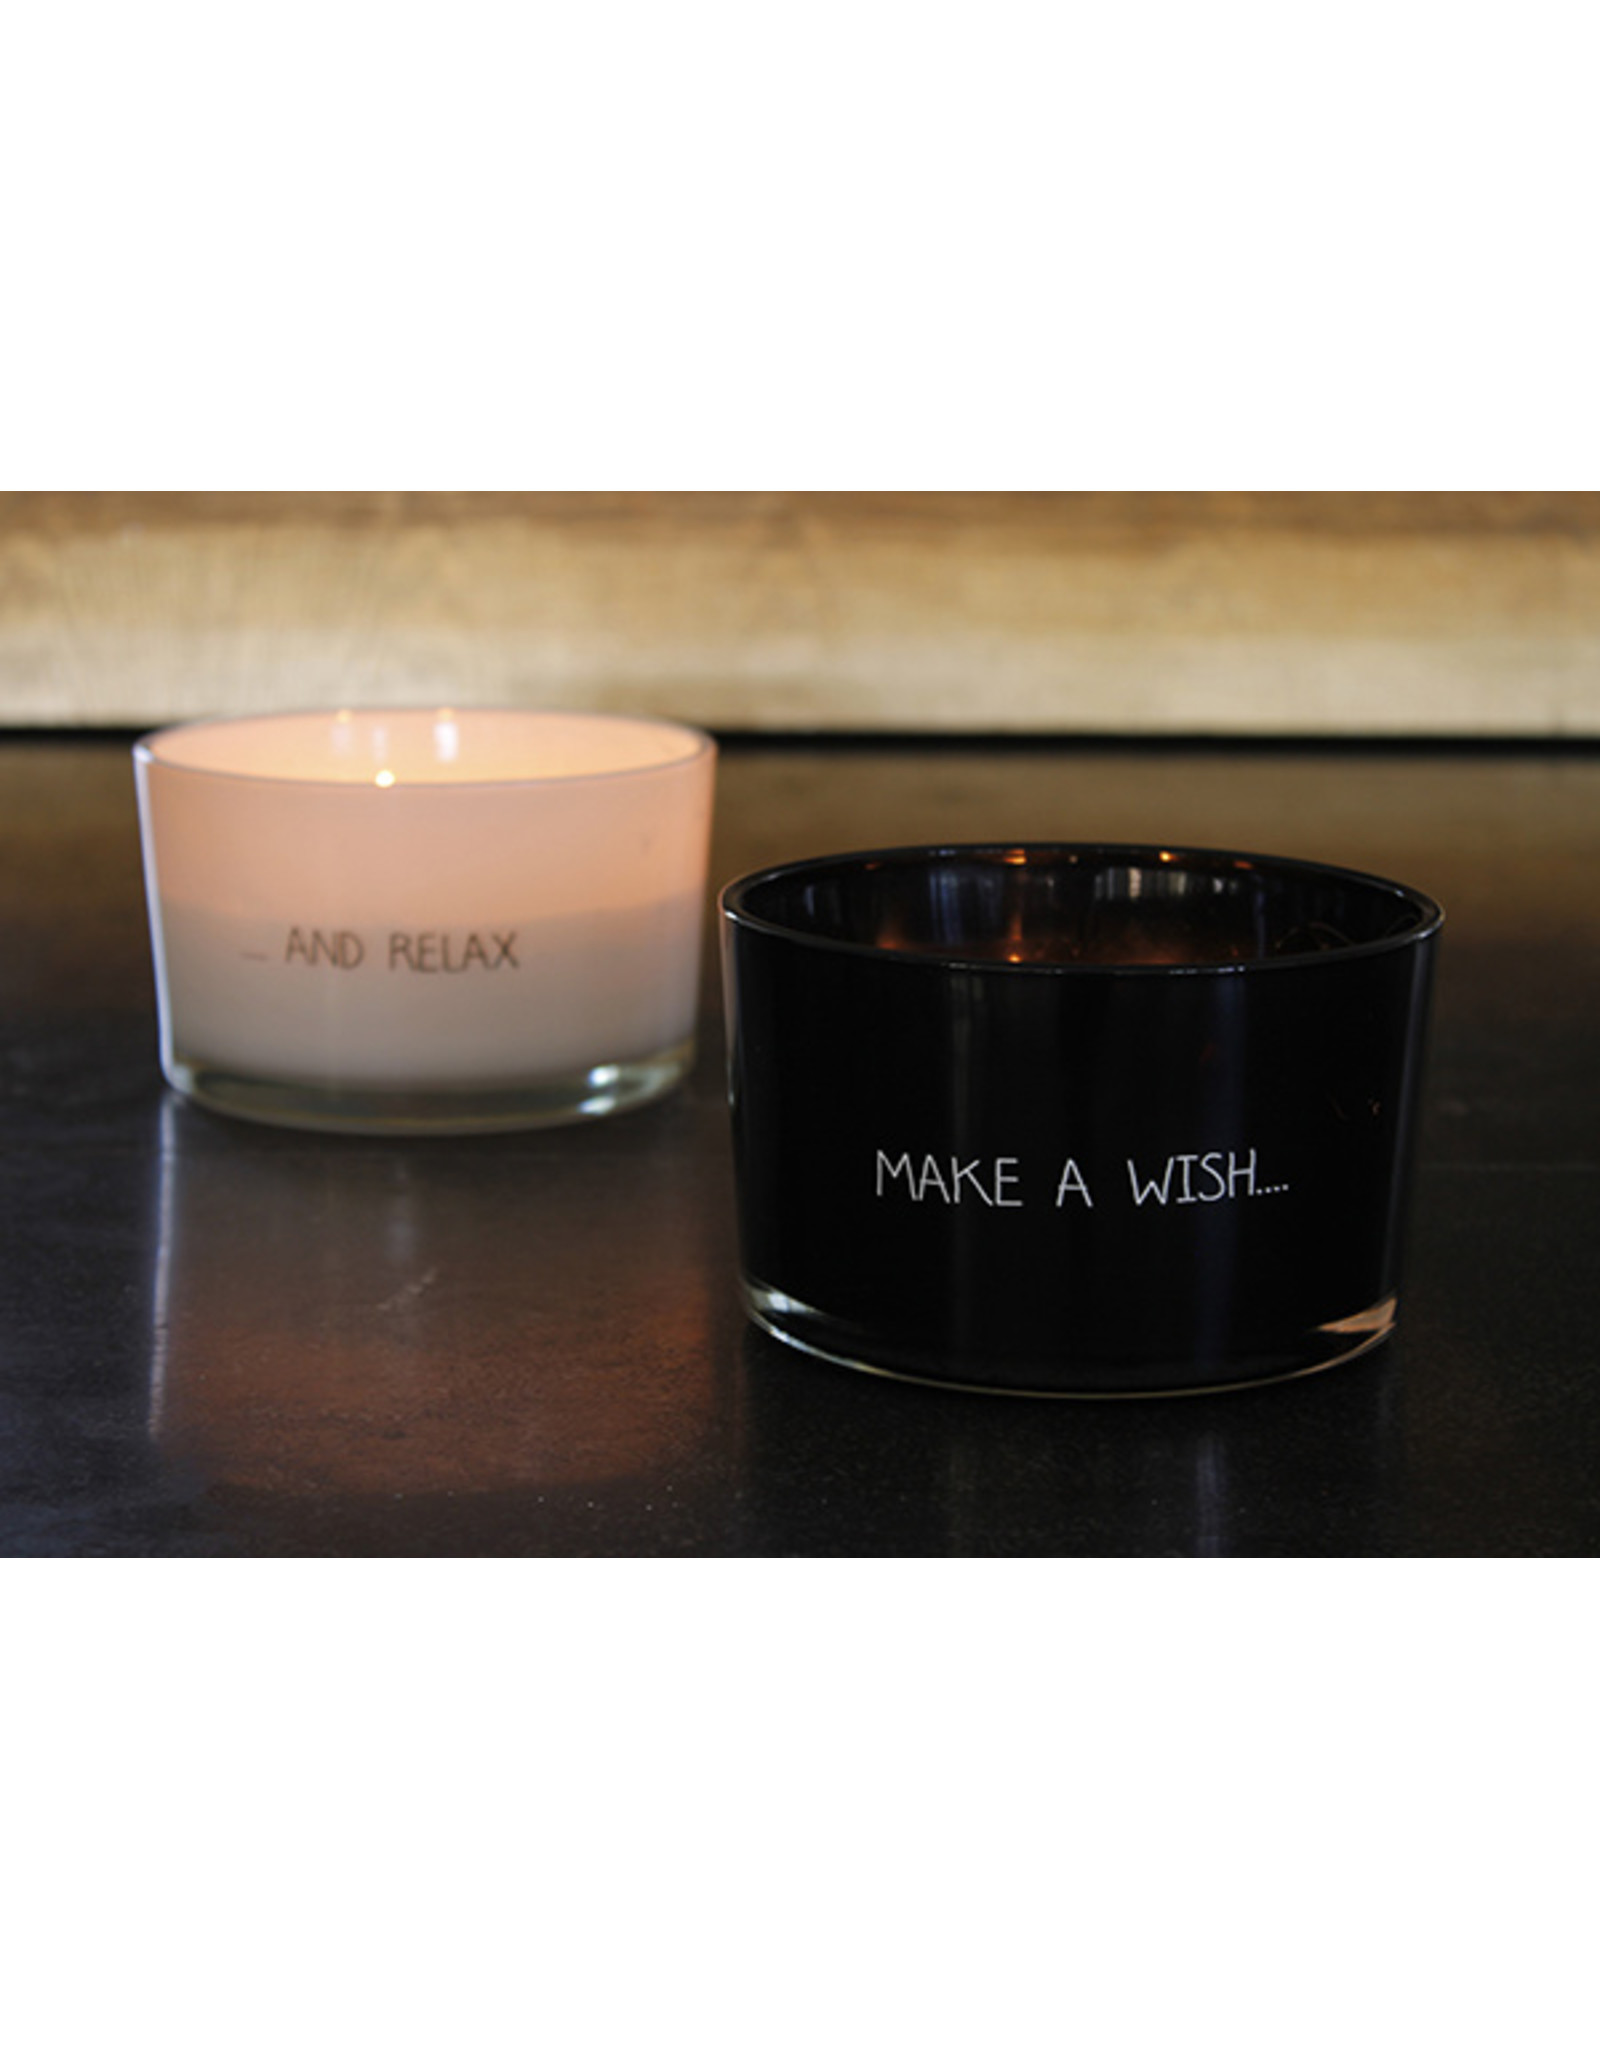 My flame Lifestyle SOJAKAARS – MAKE A WISH – GEUR: WARM CASHMERE